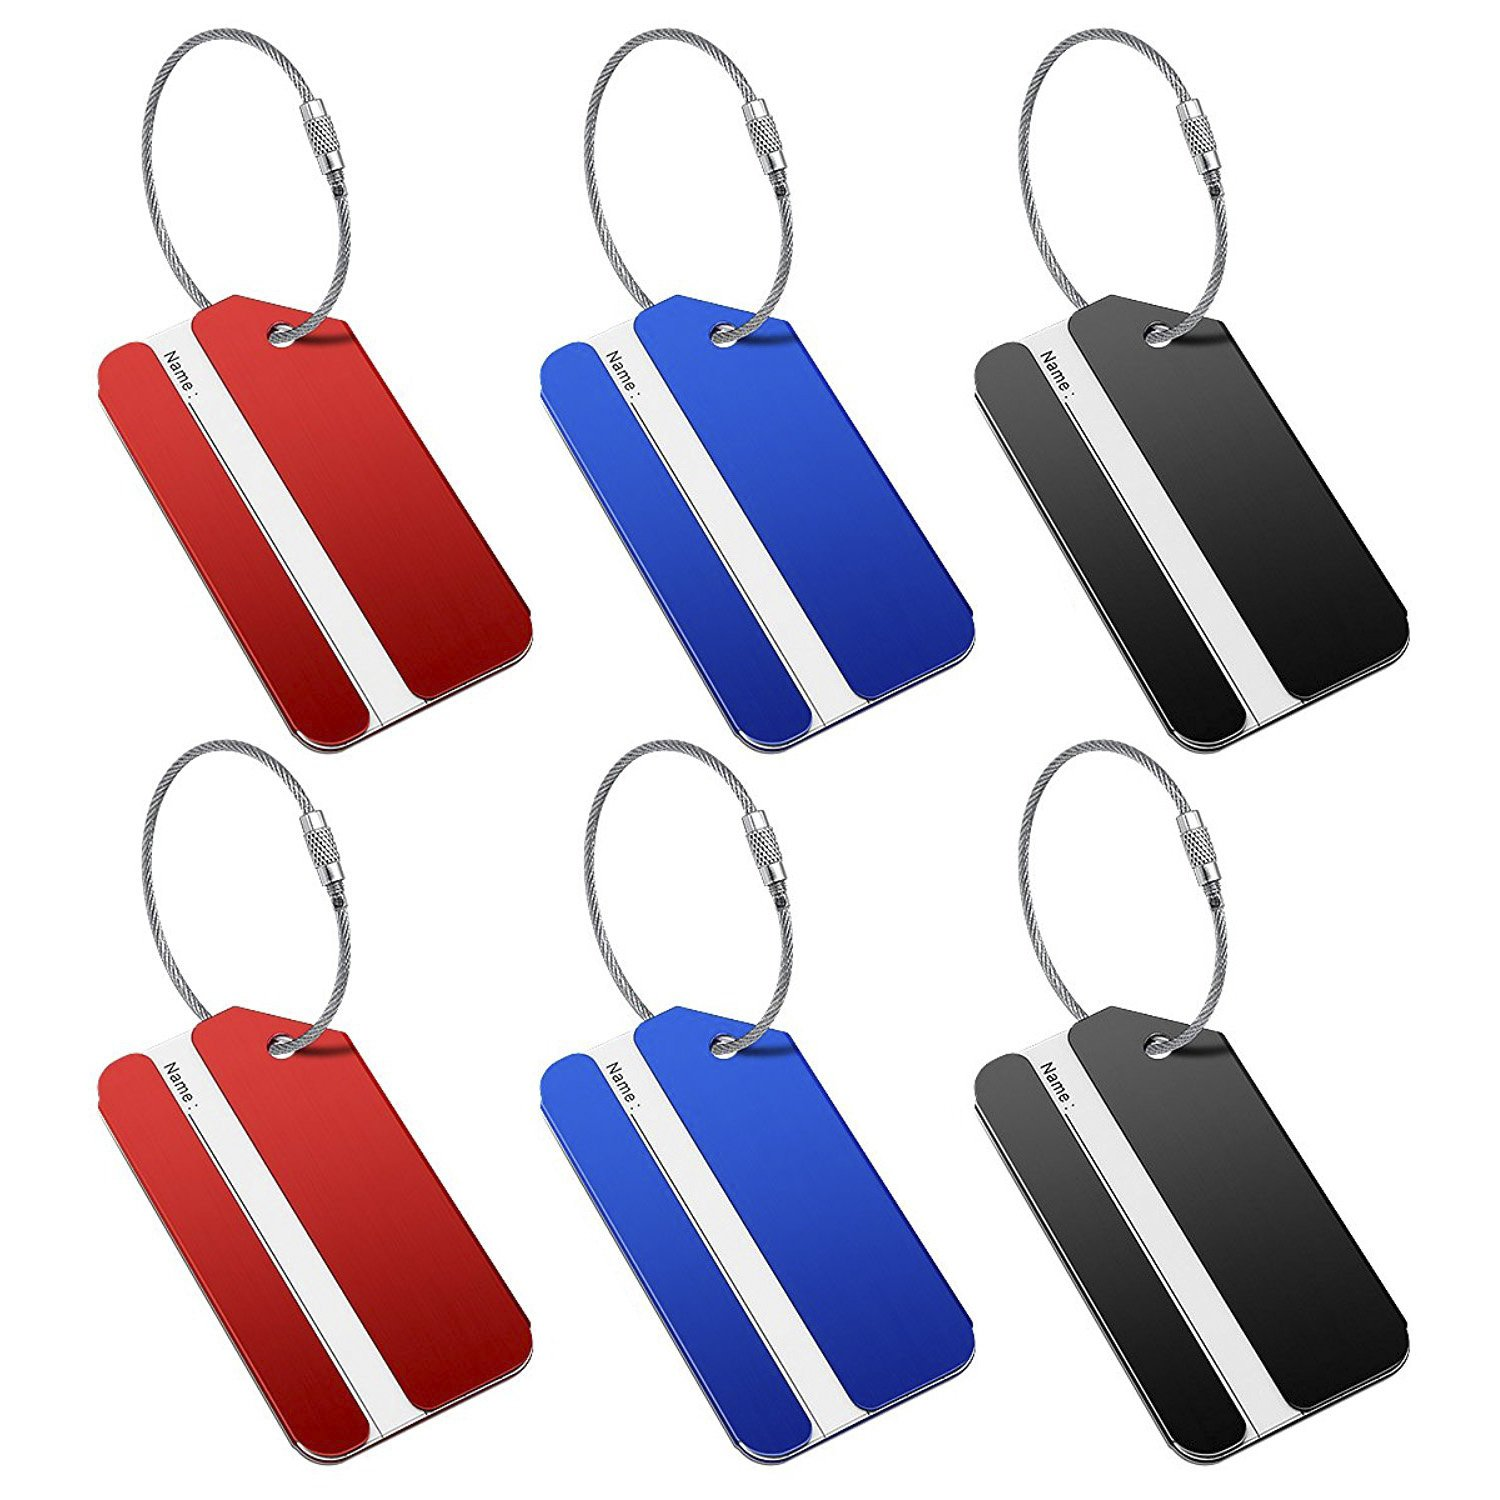 Luggage Tags 6 Pack Travel Bag Tags Women Men Aluminum Suitcase Tag with Stainless Steel Loop (2 black, 2 red, 2 blue) by HONITURE (Image #6)